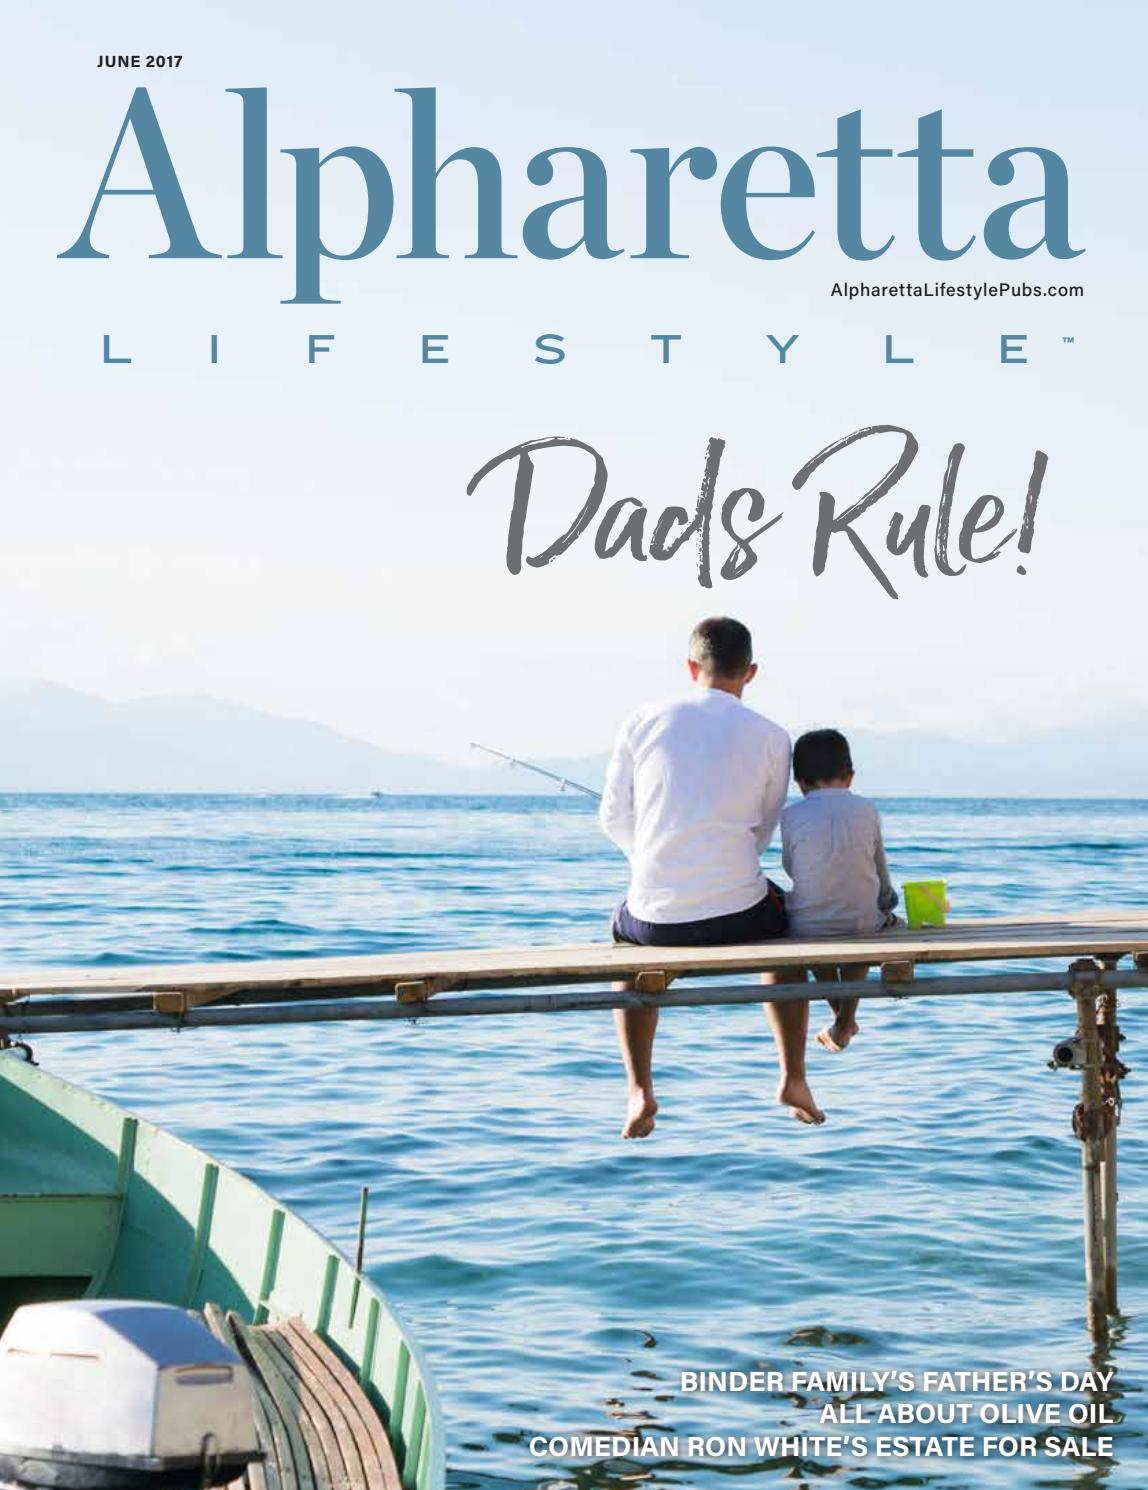 Alpharetta June 2017 by Lifestyle Publications - issuu